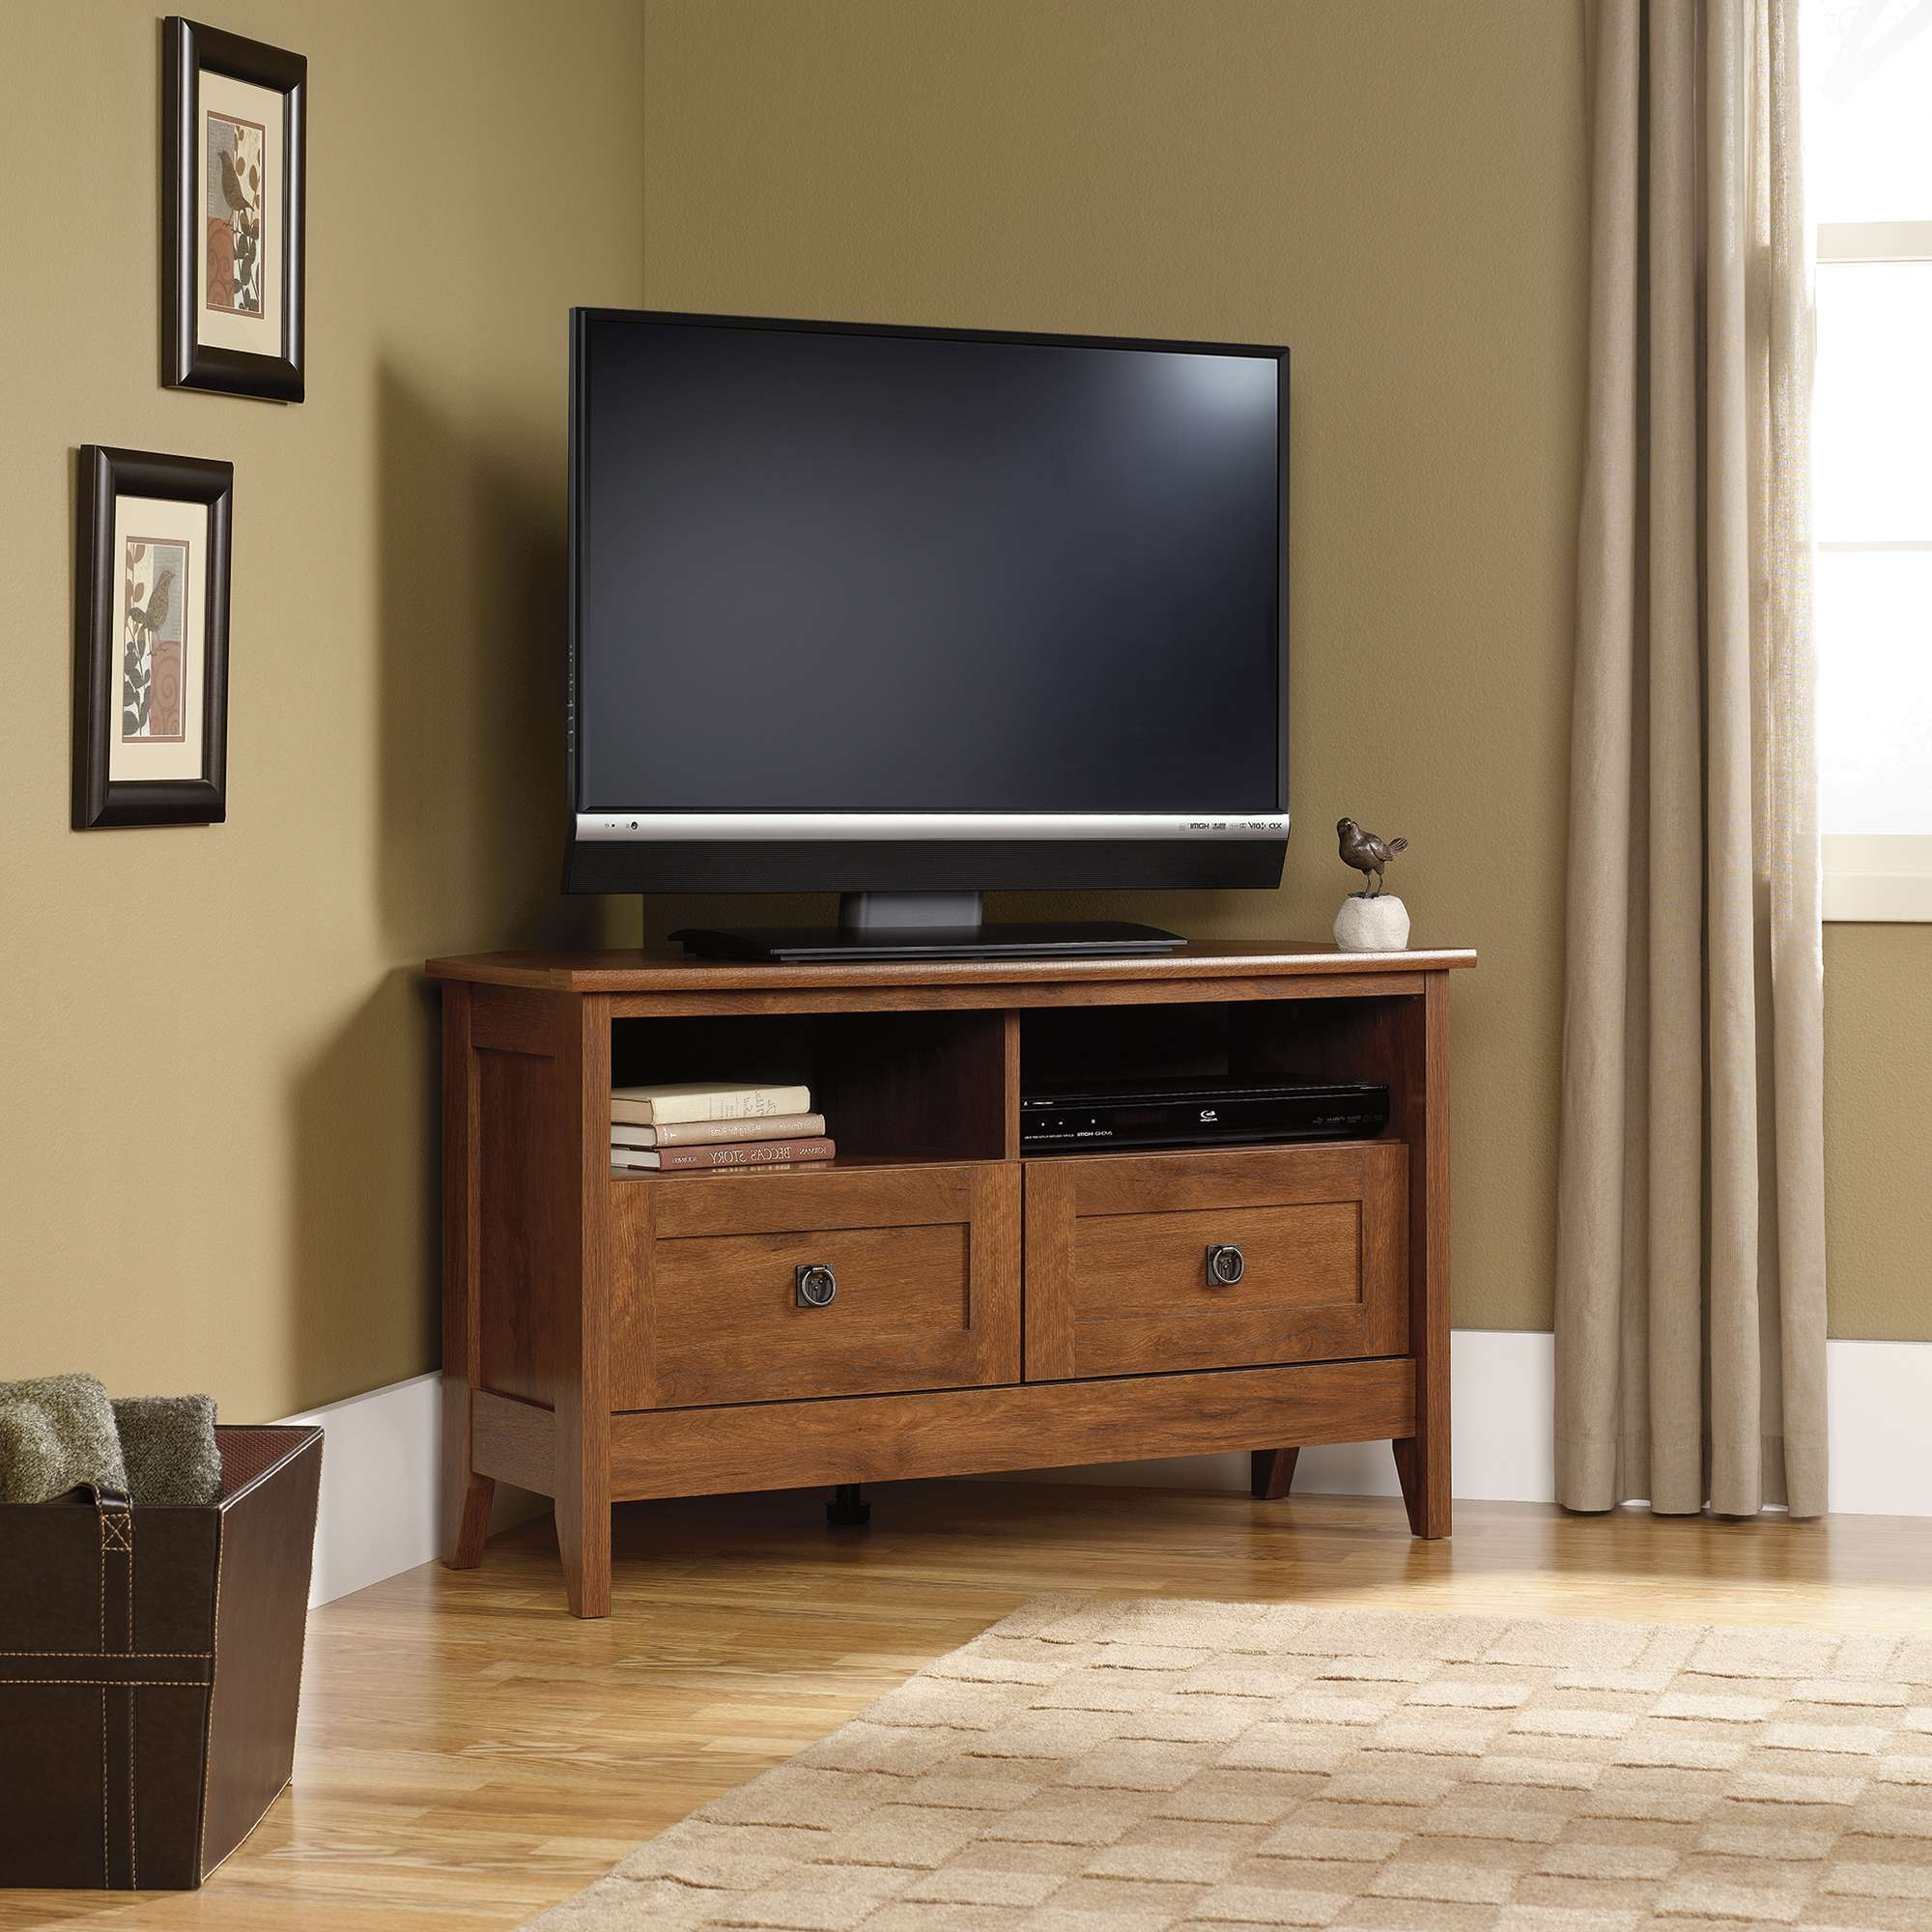 Best Corner Tv Stands For 55 Inch Tv 69 About Remodel Home Design With Regard To 55 Inch Corner Tv Stands (View 16 of 20)